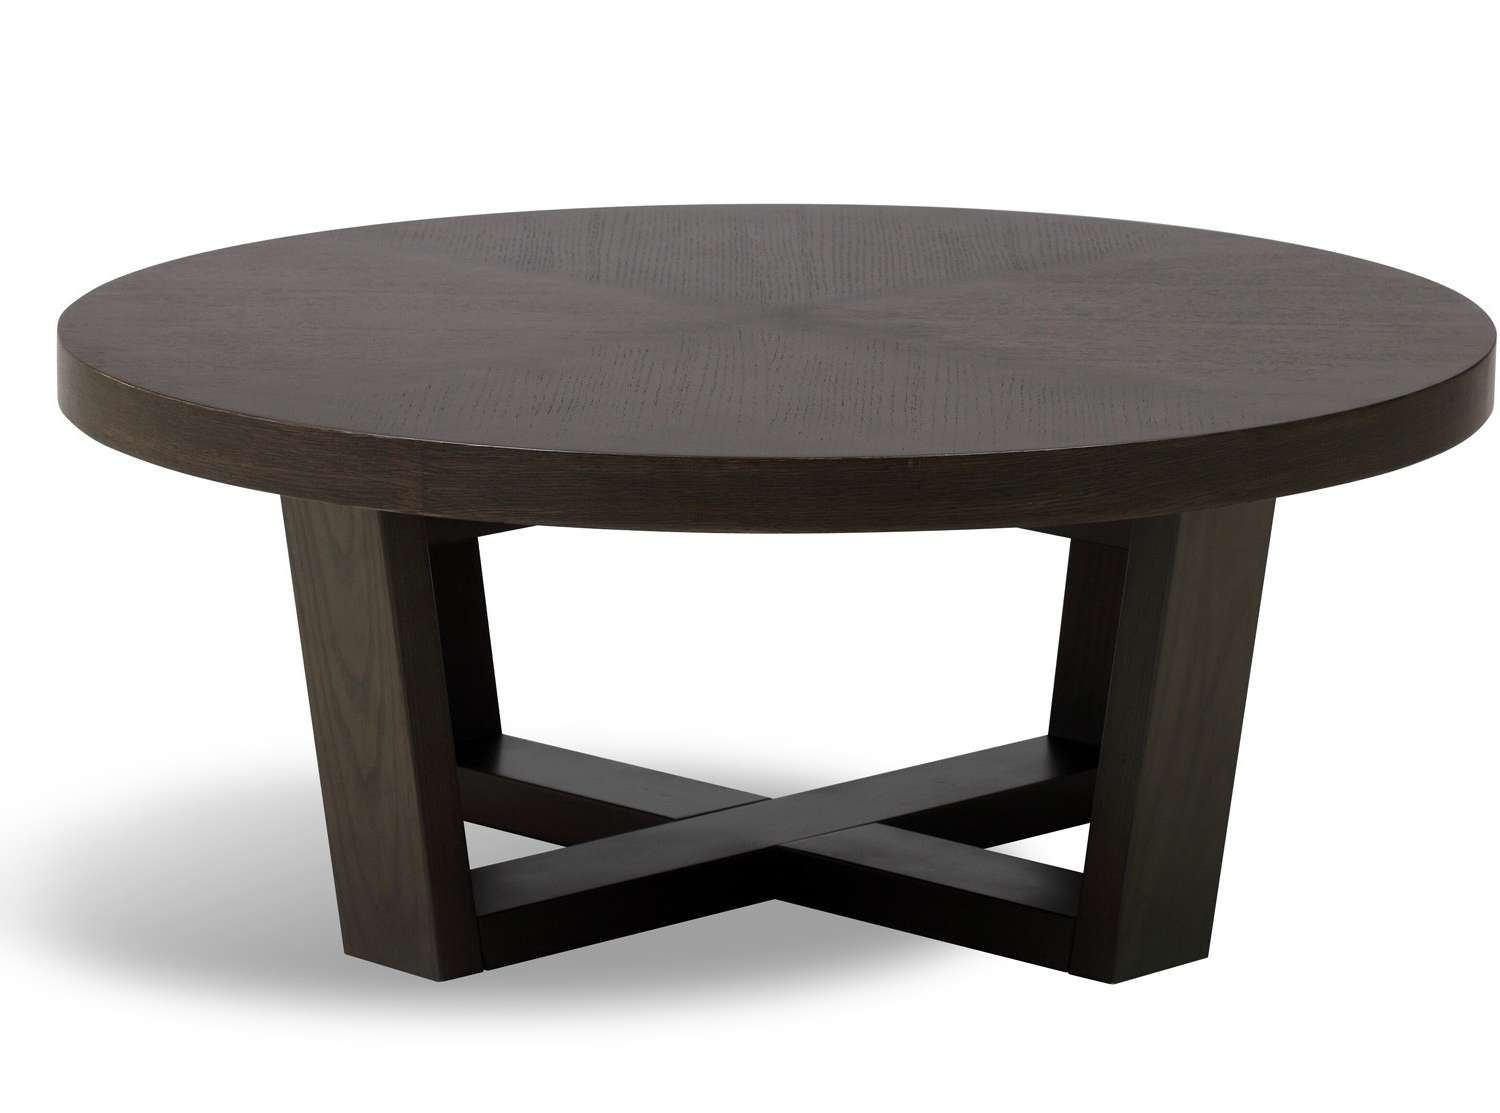 Recent Solid Round Coffee Tables For Coffee Tables : Round Coffee Table Circular Wood Padded Seagrass (View 12 of 20)